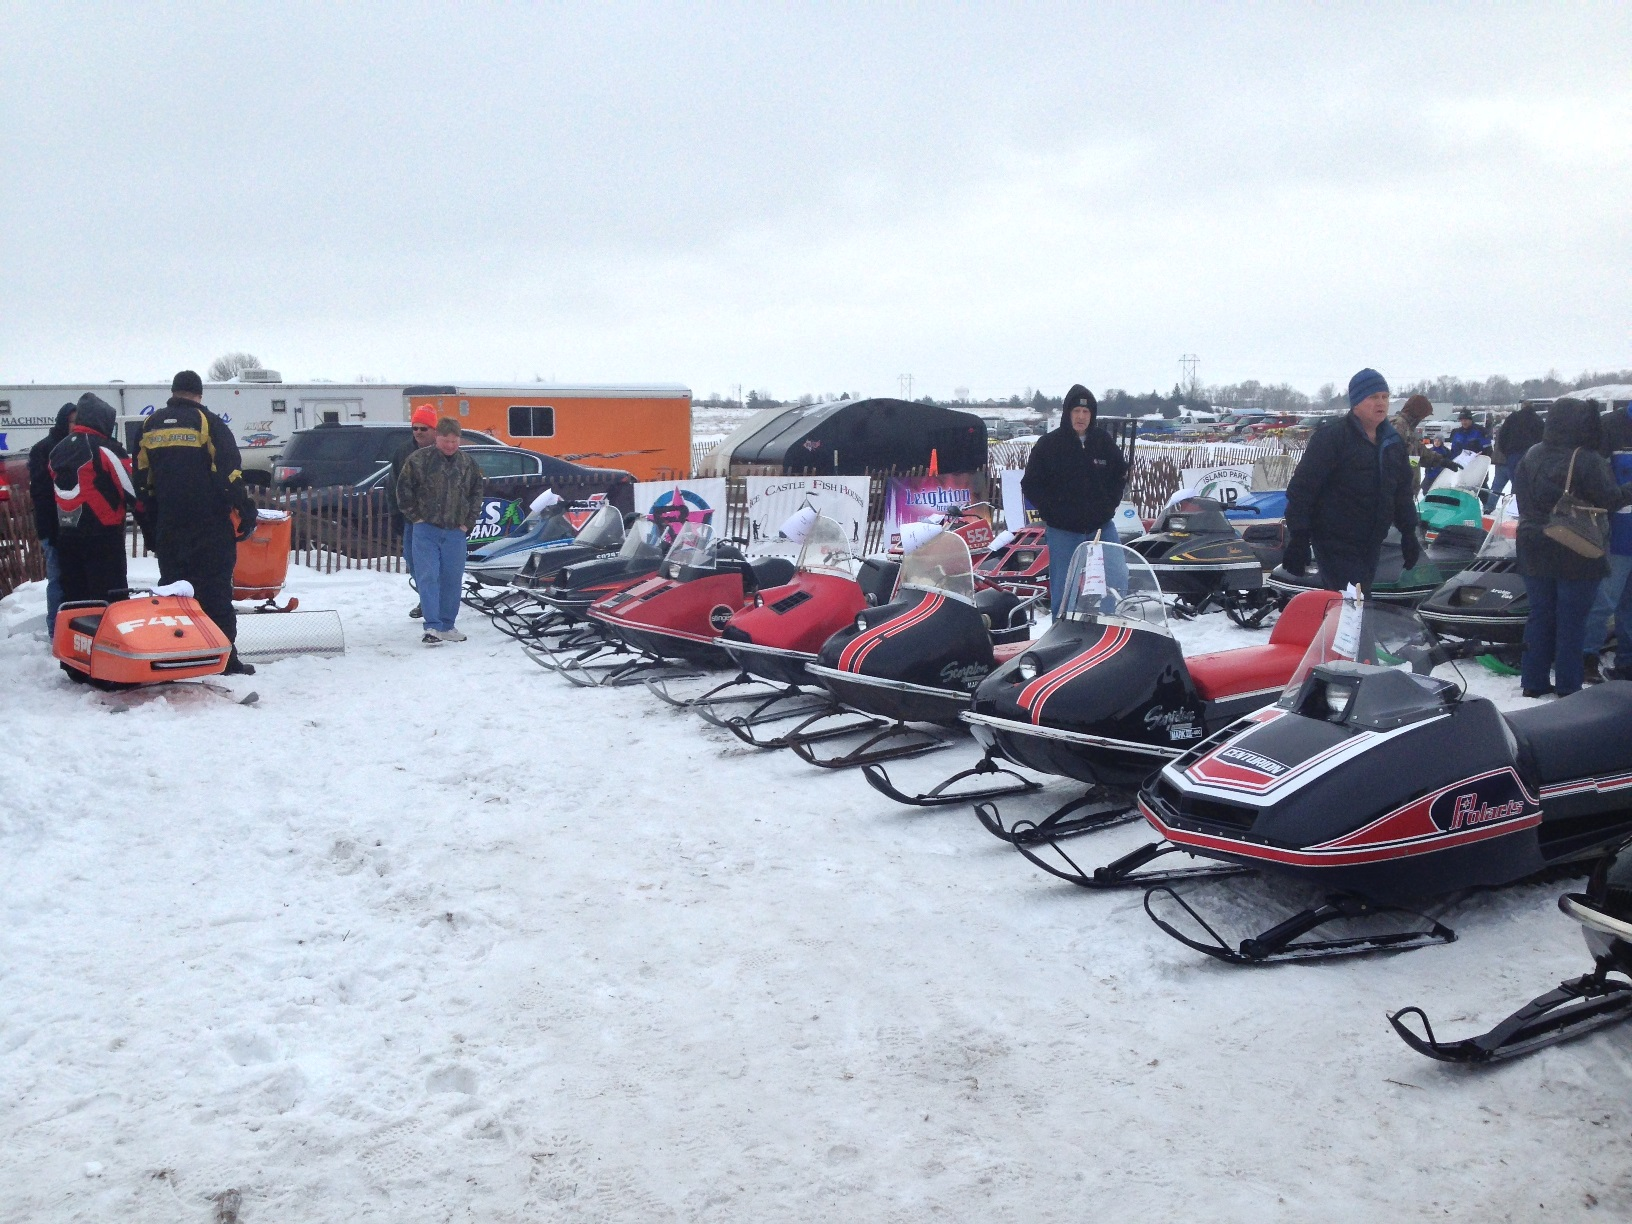 Wright County Snowmobile Association